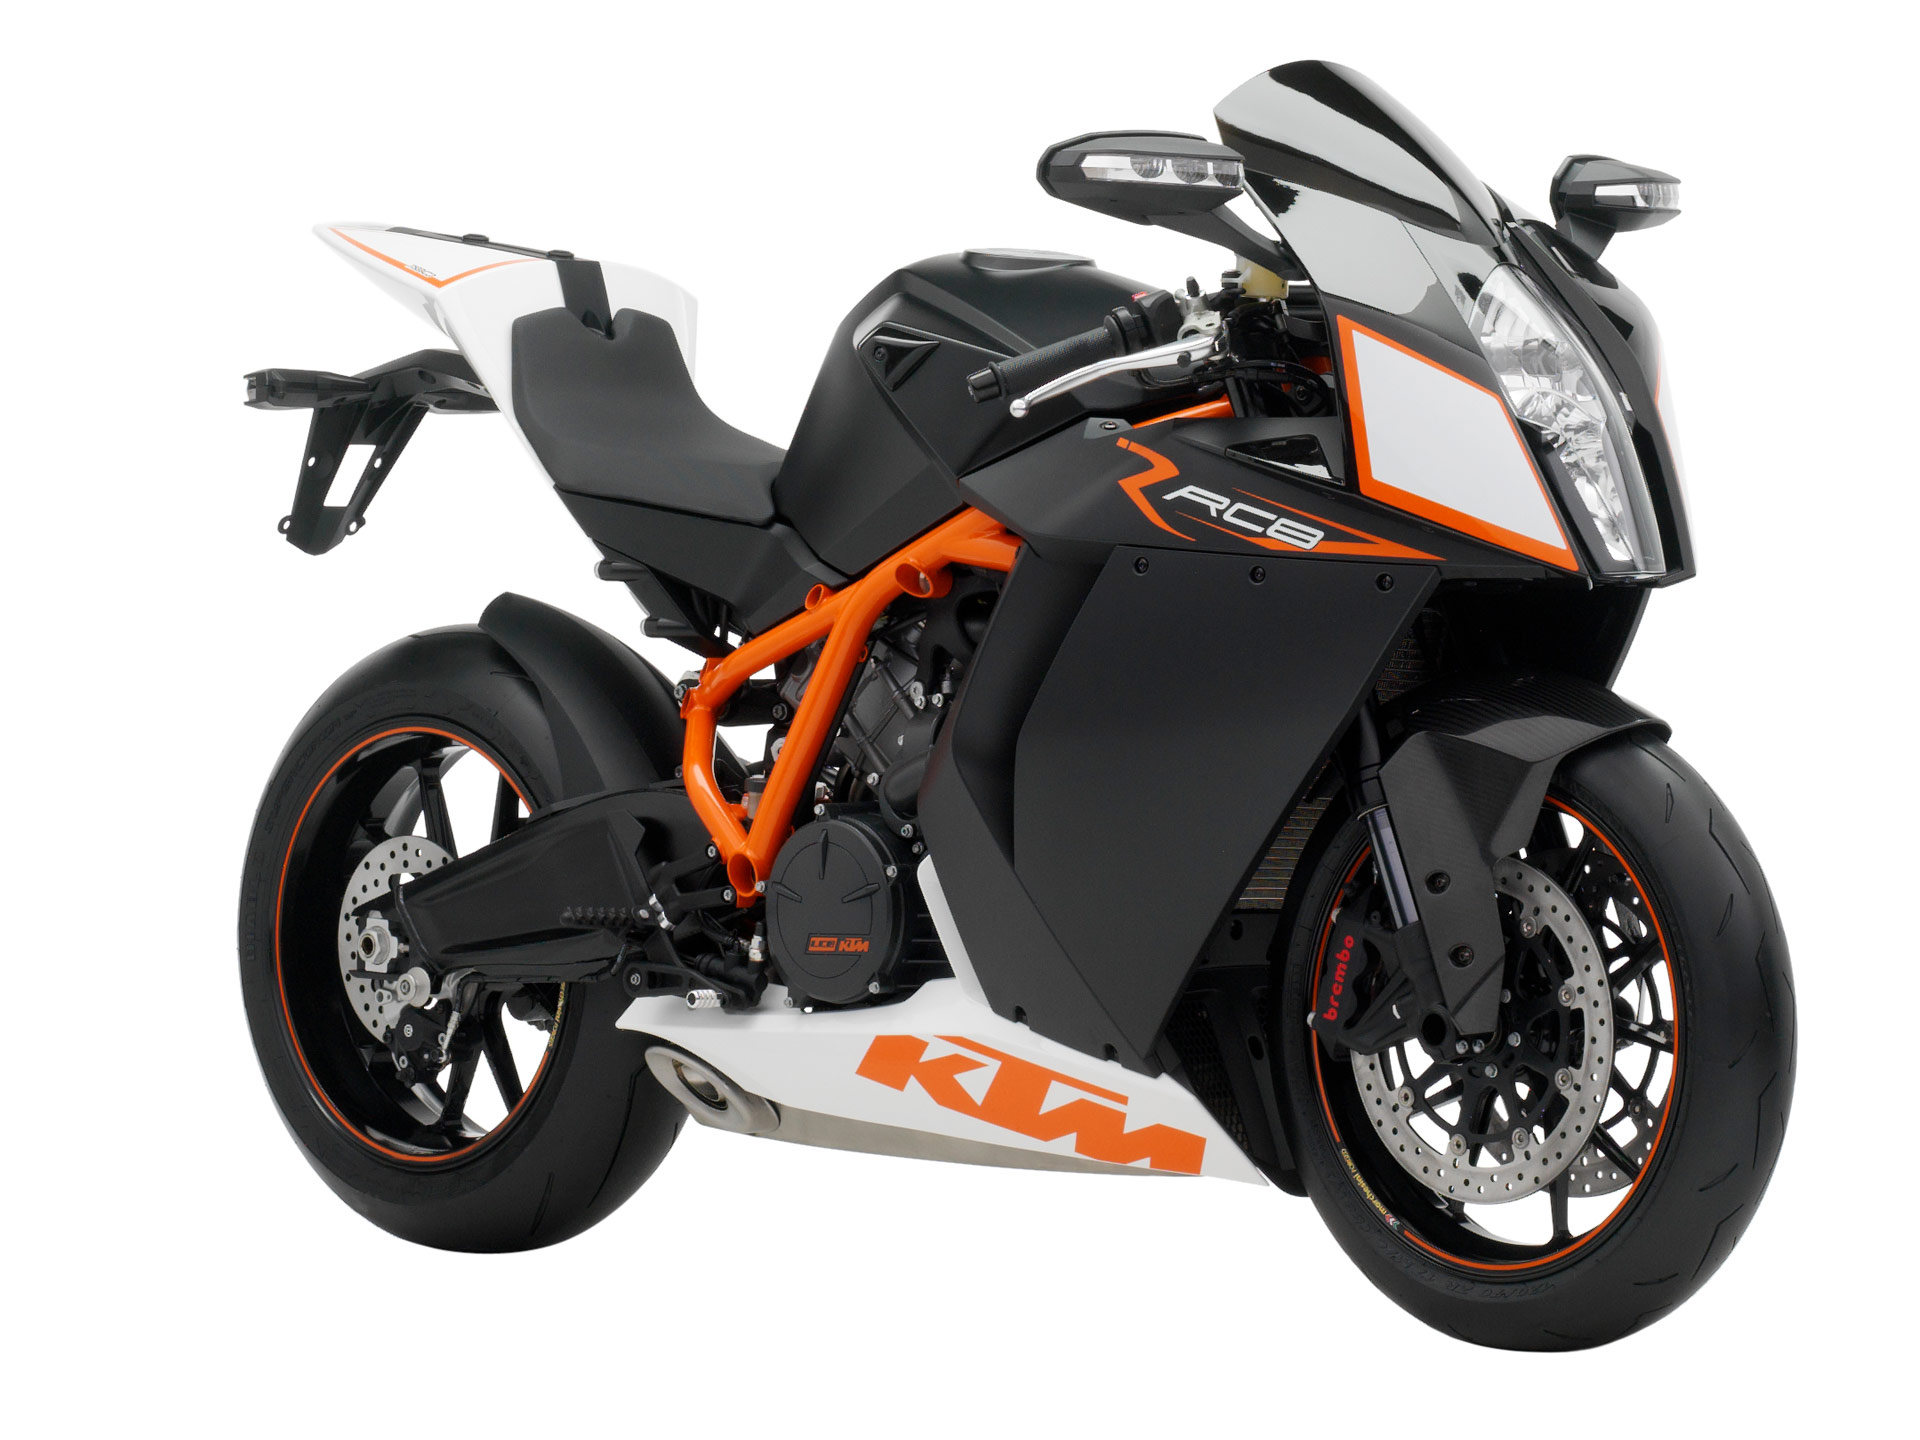 KTM Bike Showroom Information in Ahmedabad